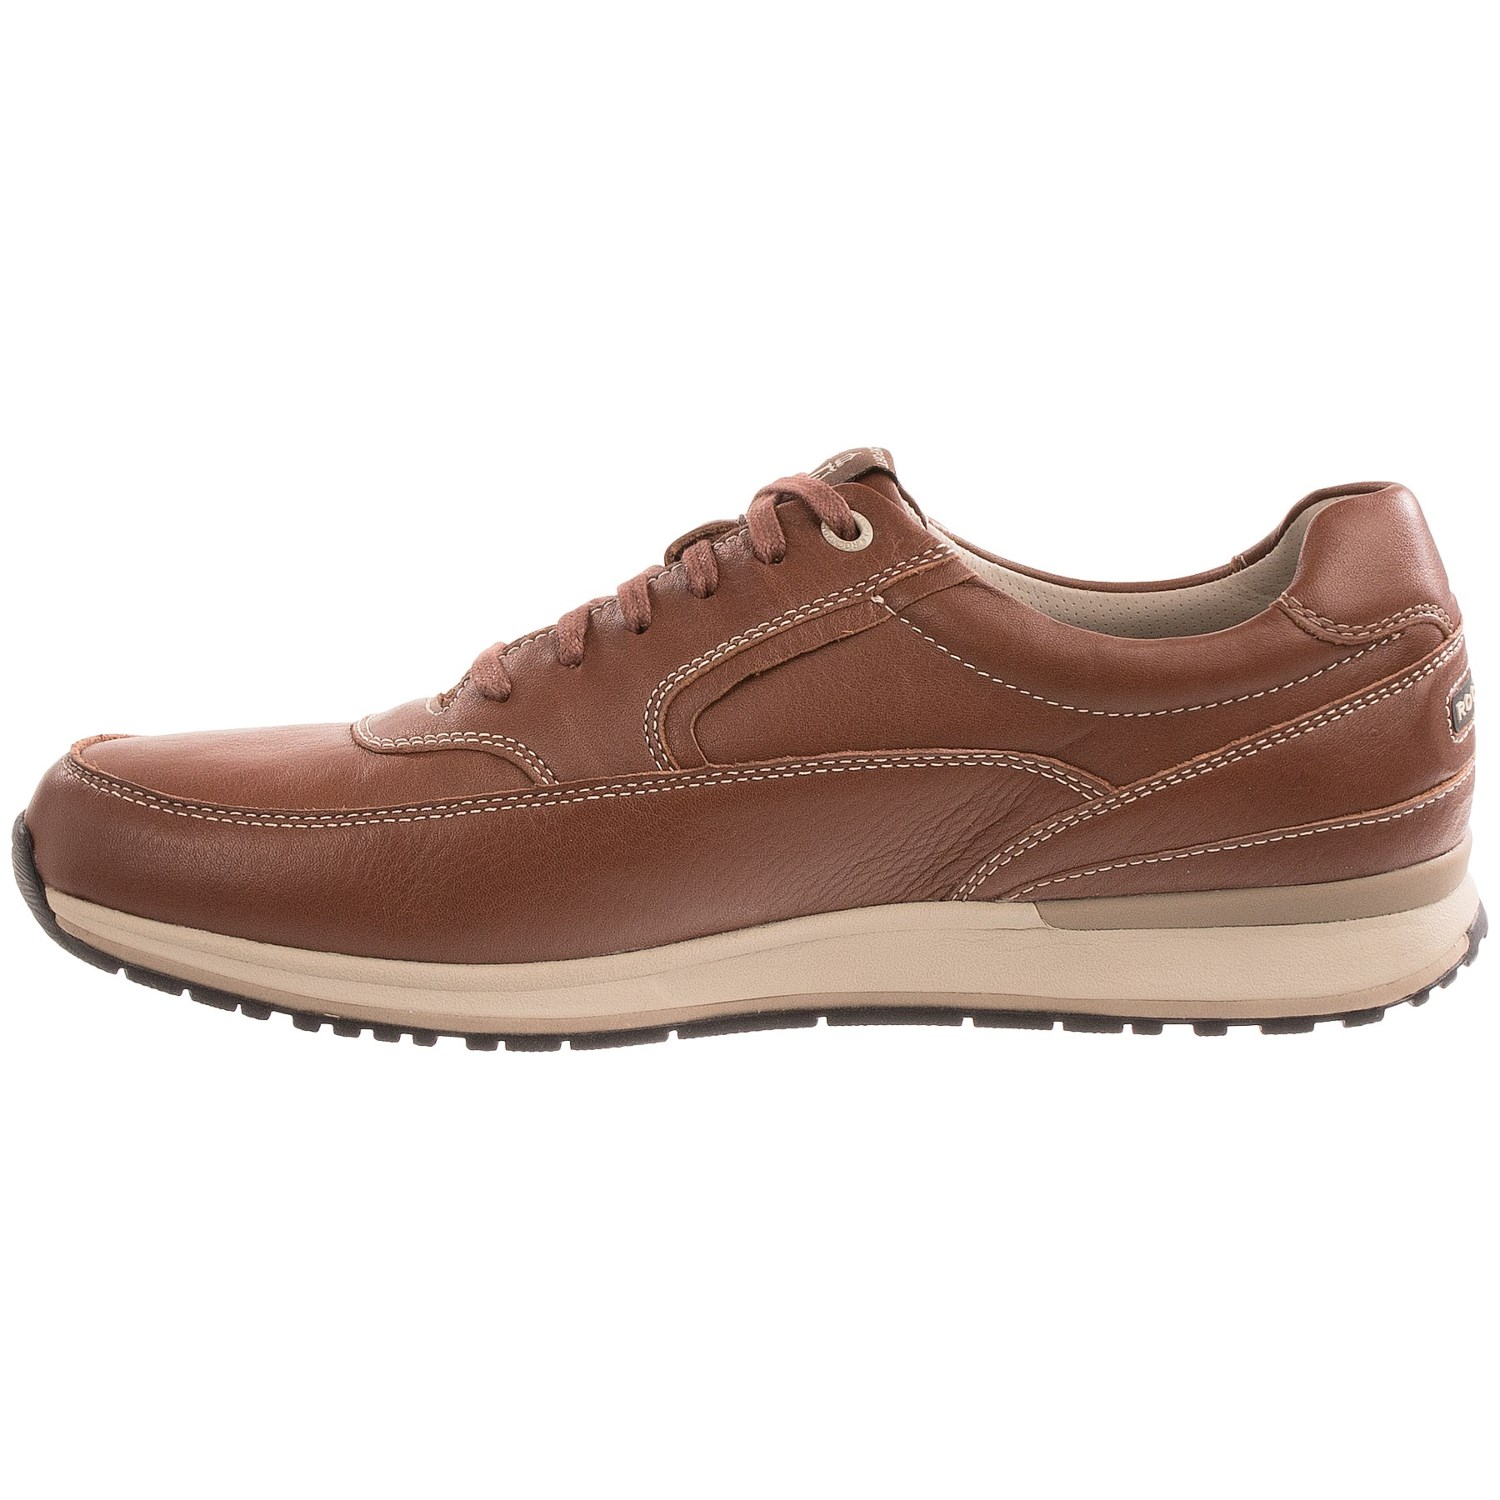 Rockport Shoes Comfort Reviews